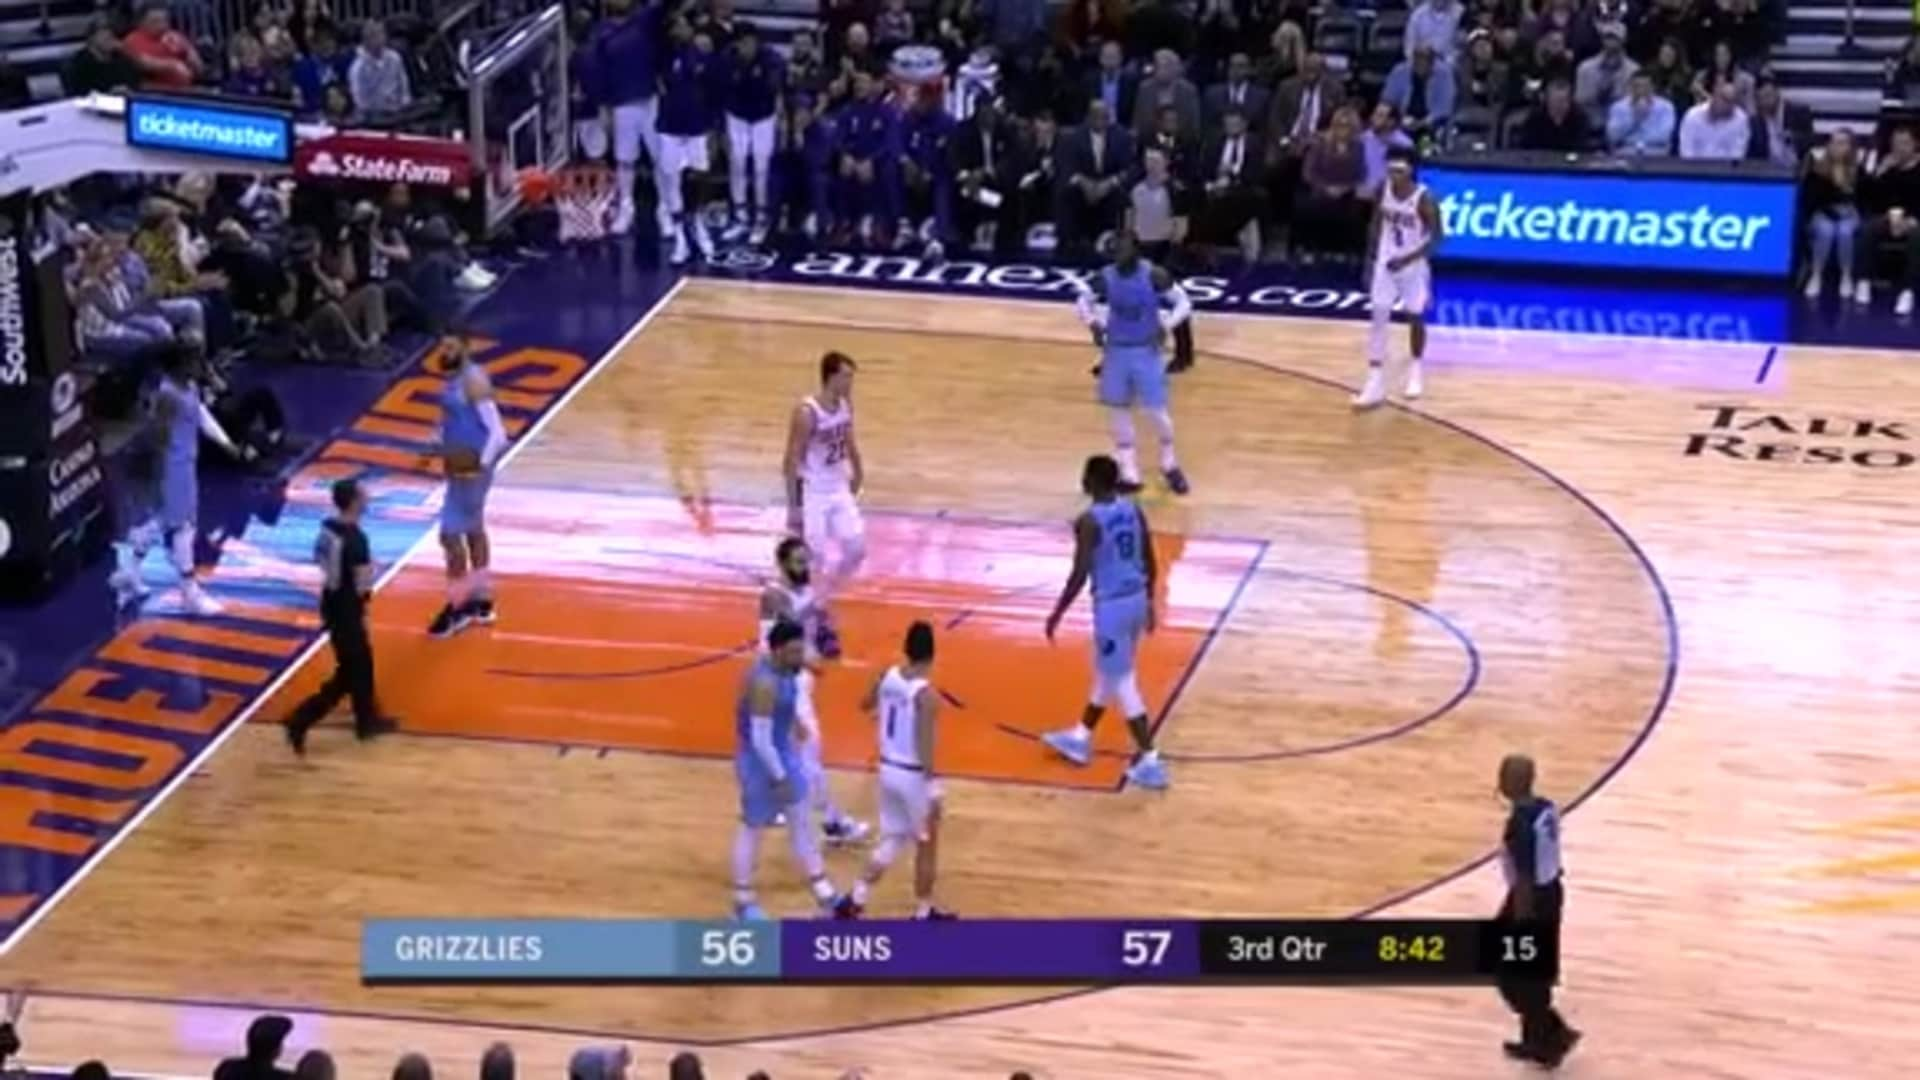 Frank Kaminsky with the Assist to Rubio